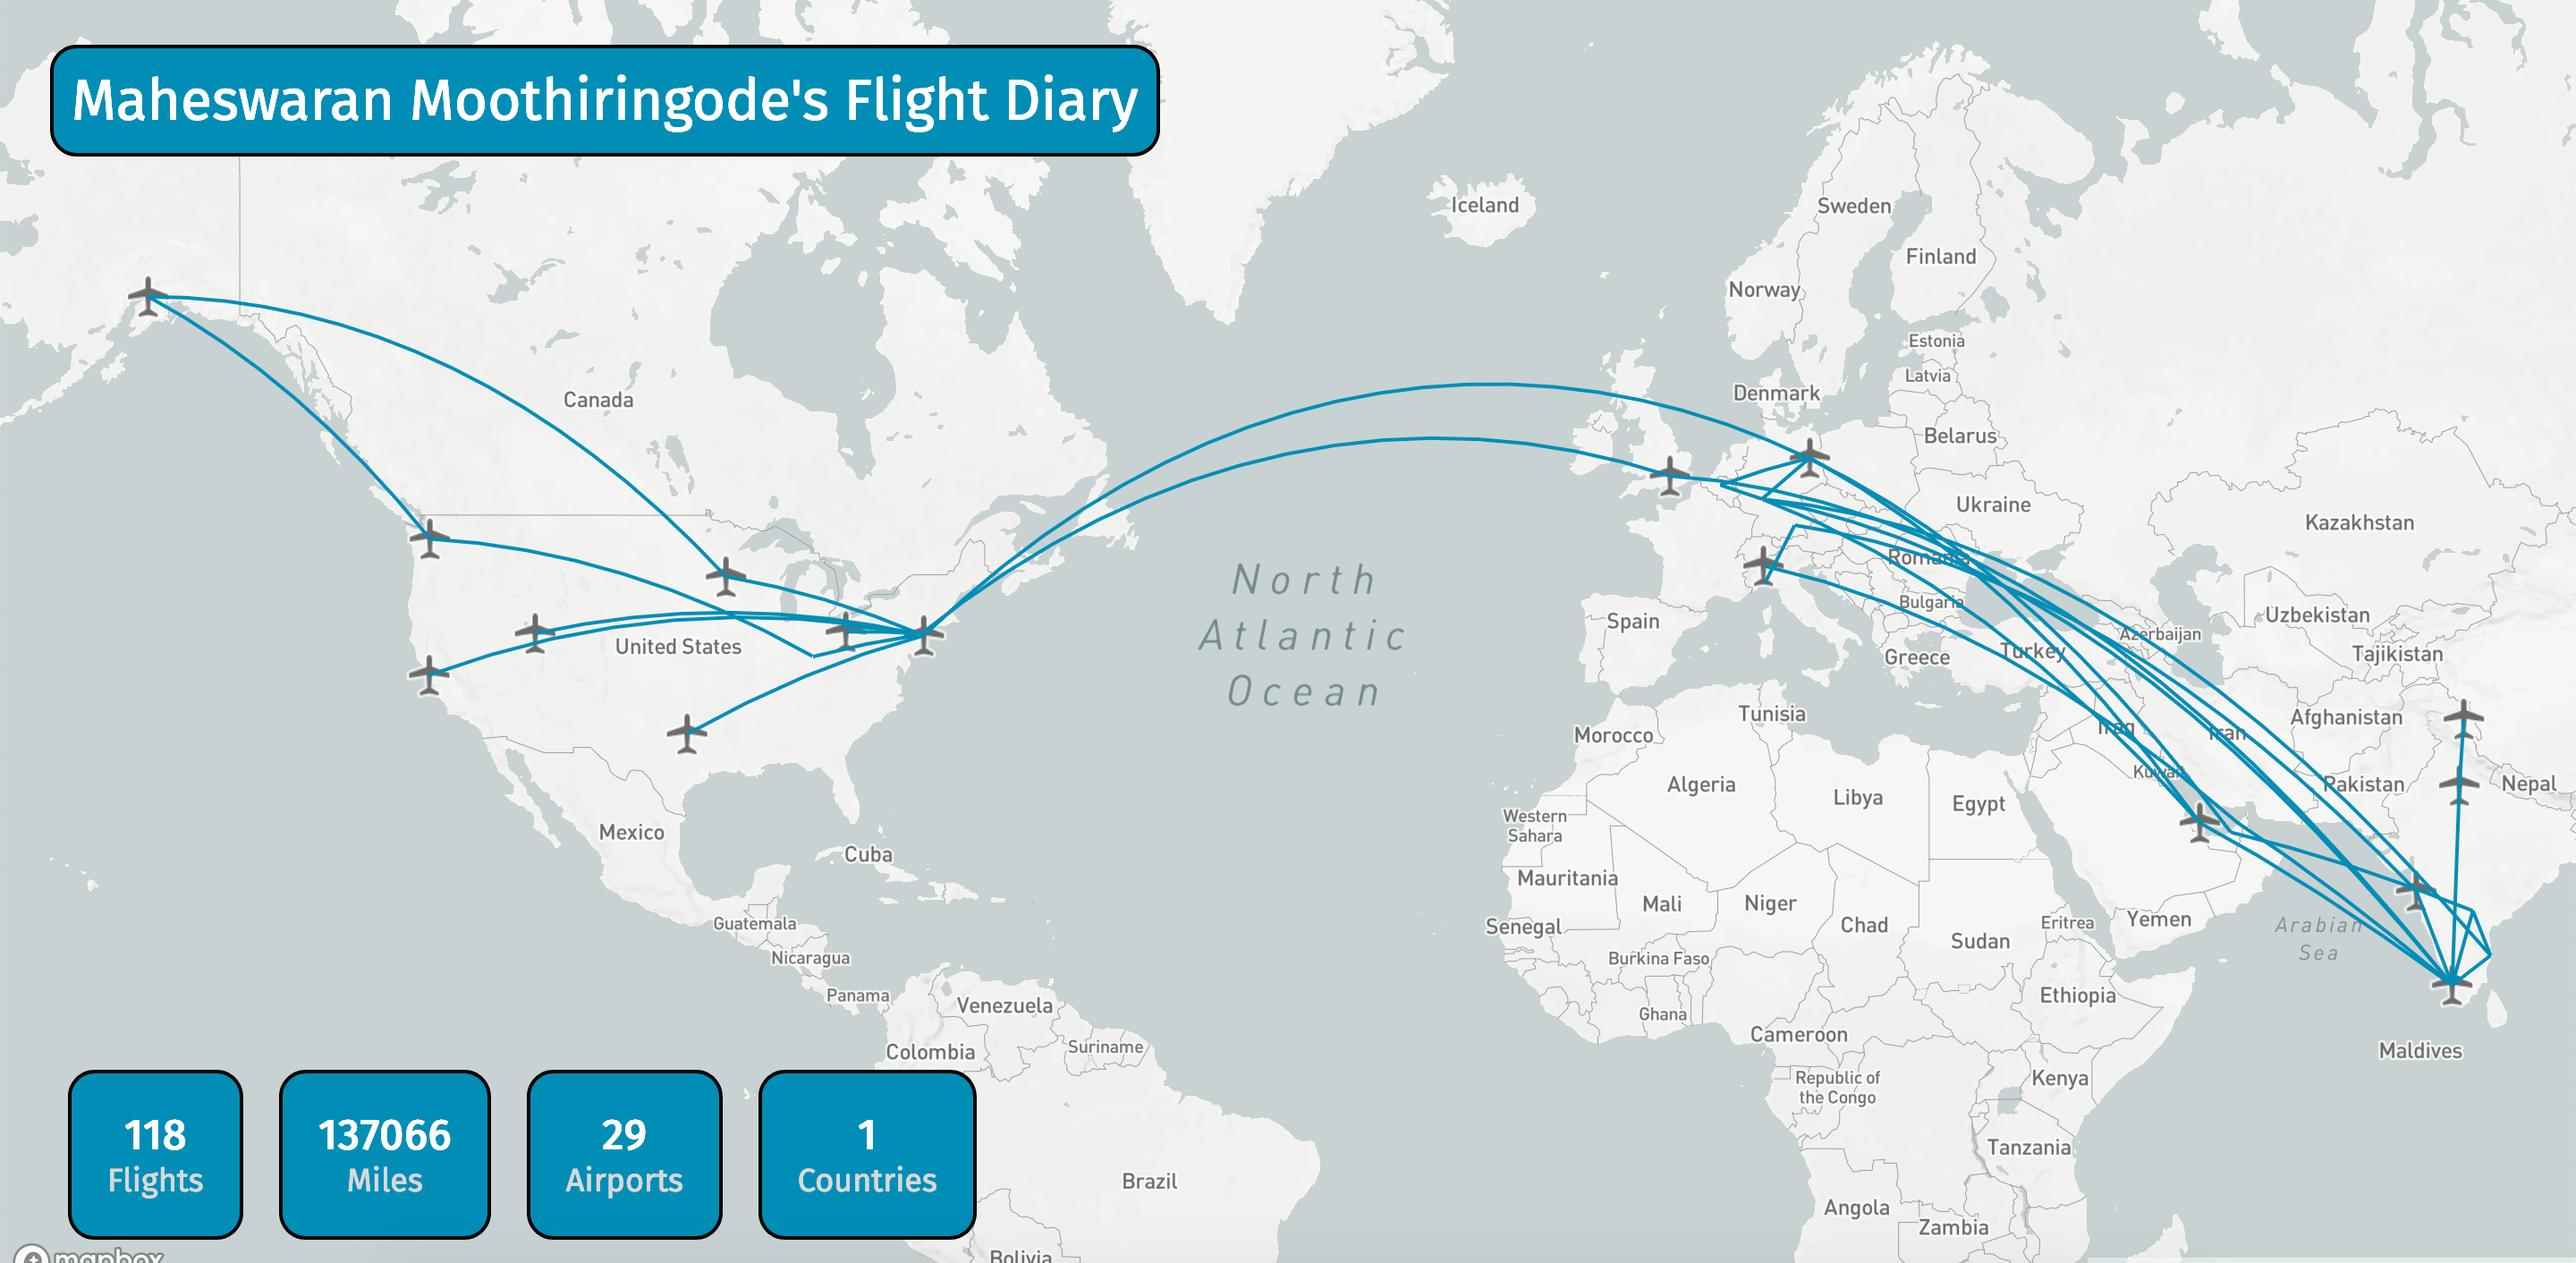 image of all flights i took over a world map